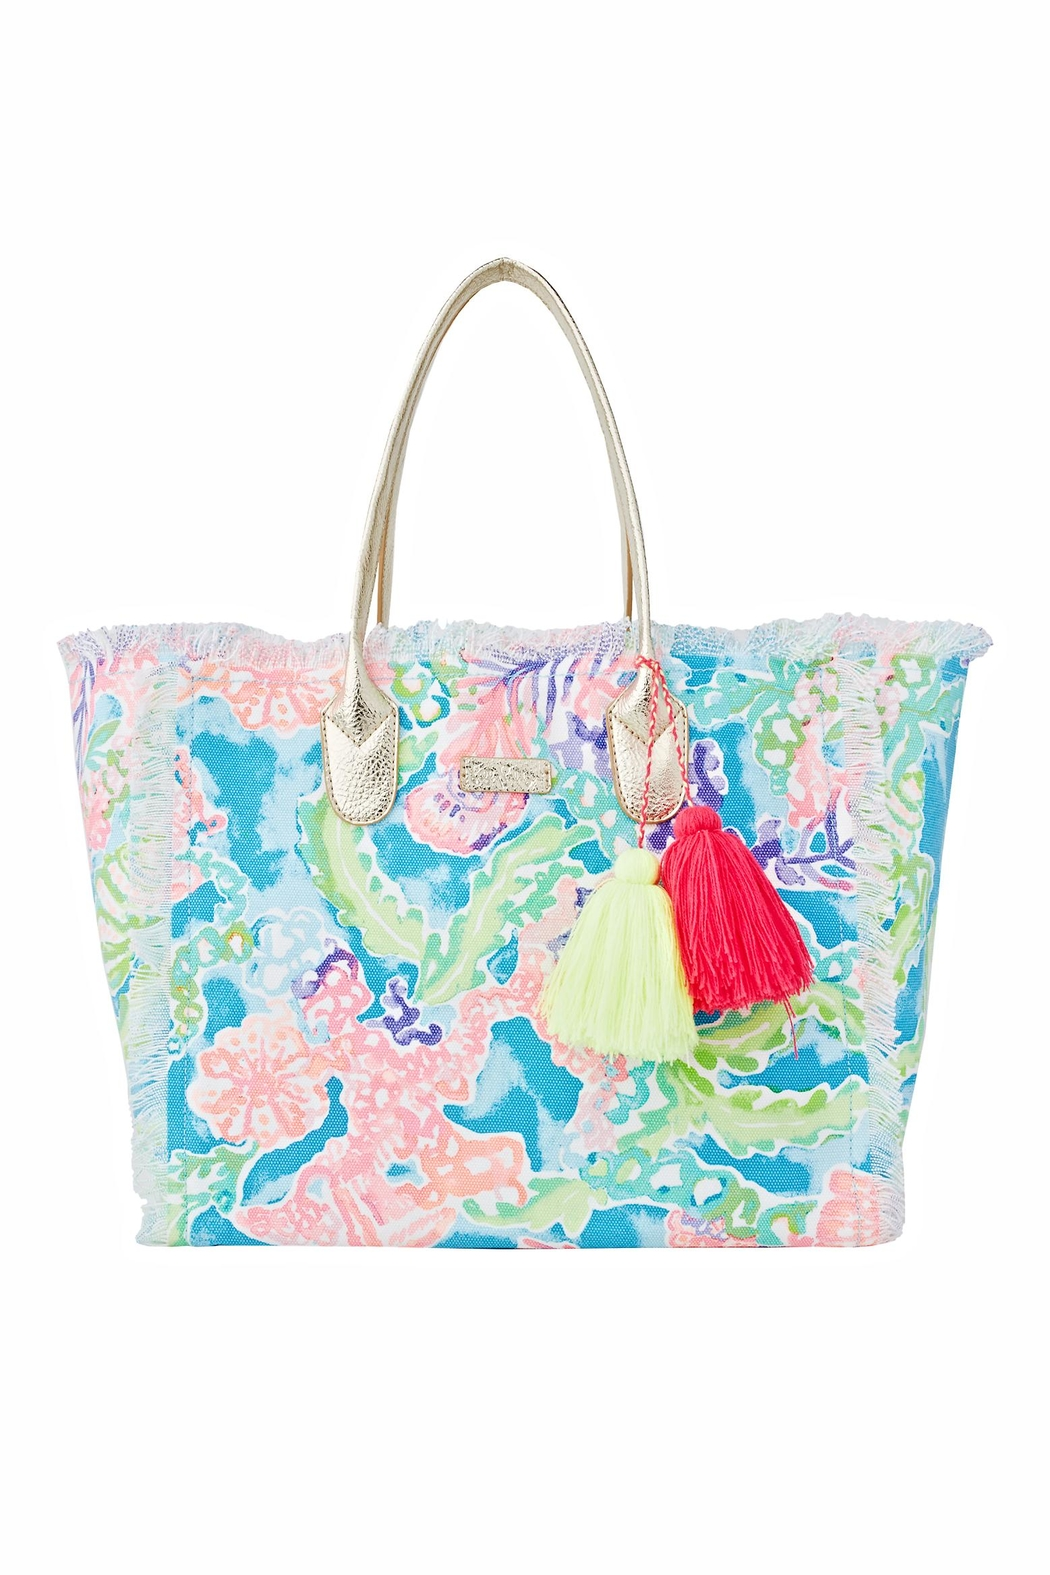 Lilly Pulitzer Gypset Tote Bag - Main Image